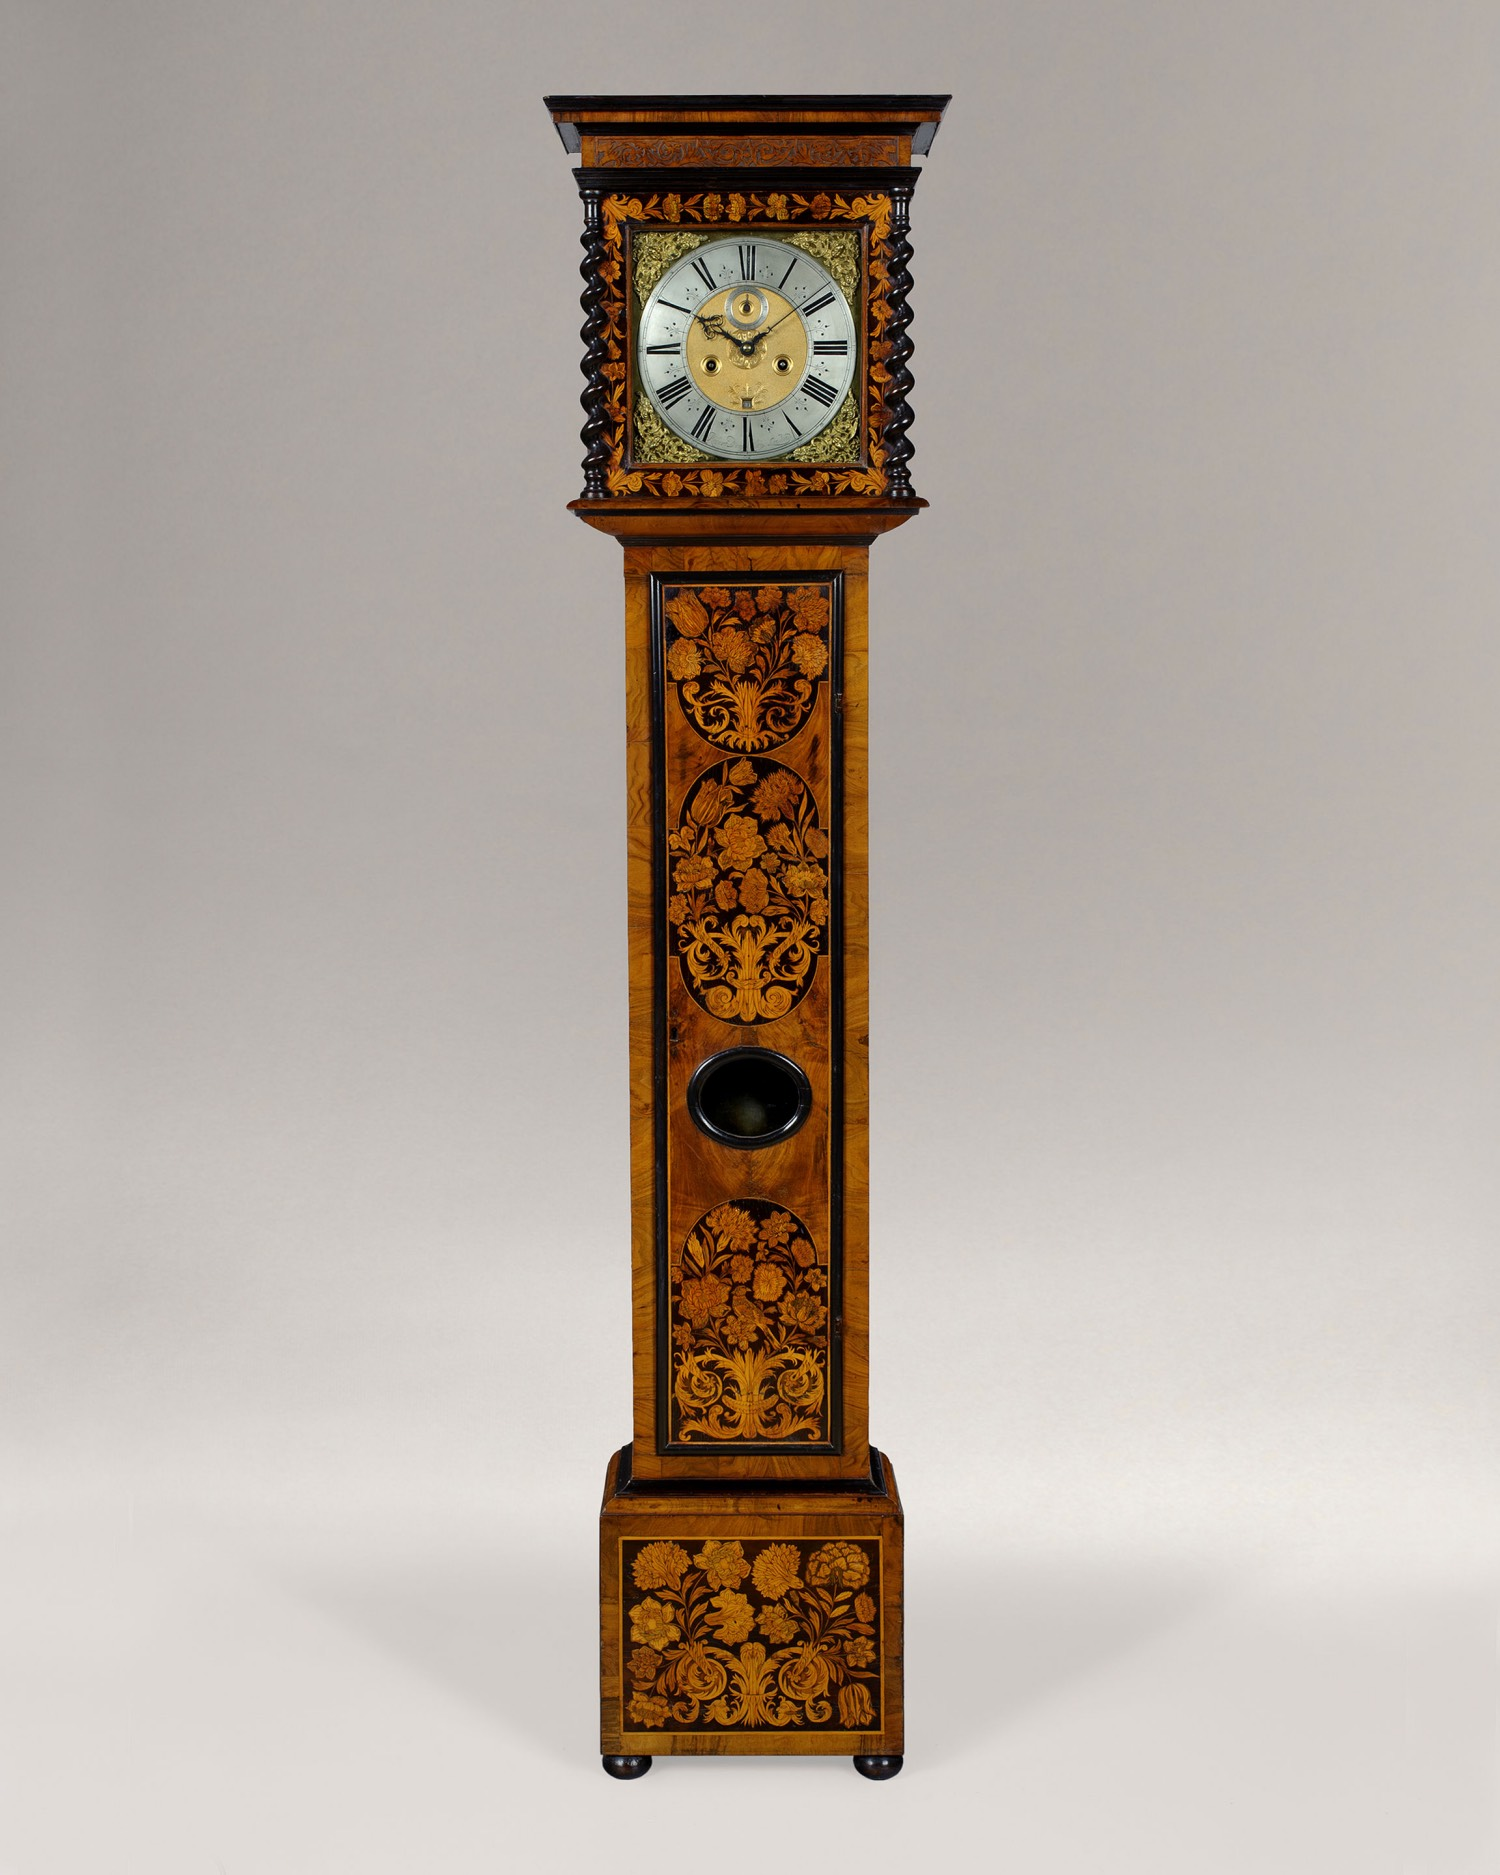 ROBERT DINGLEY. A FINE WILLIAM III PERIOD 8-DAY LONGCASE CLOCK.